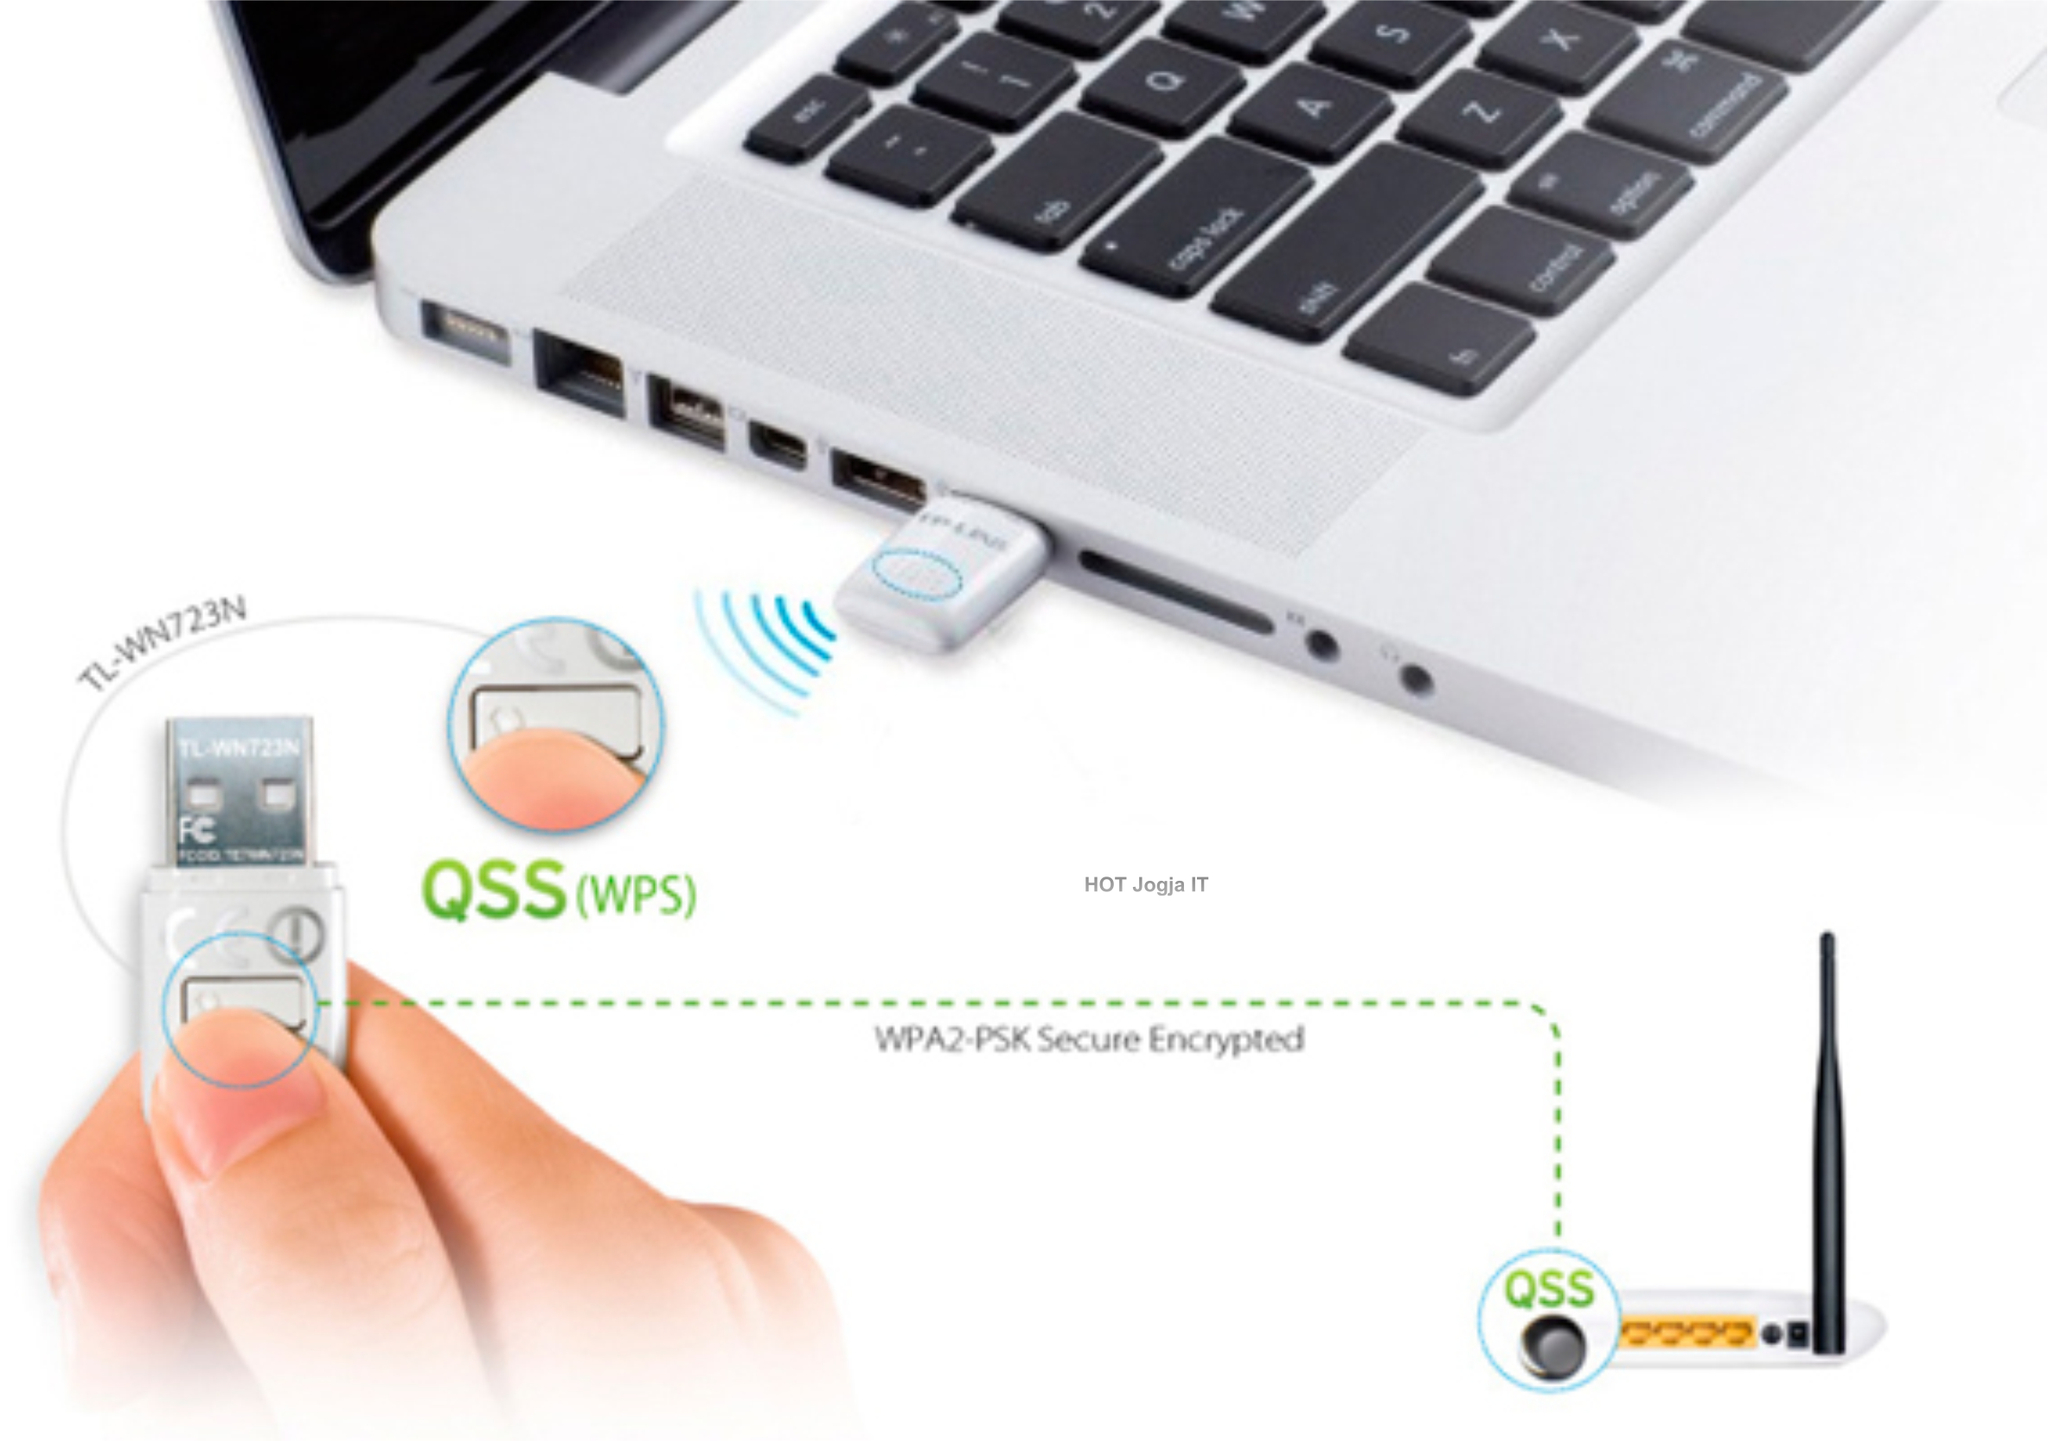 Tp Link Tl Wn725n 150mbps Mini Wireless Nano Usb Adapter 150 Mbps Of Up To This Allows For Fast Connections Which Can Be Used Lag Free Online Gaming Ie Sony Psp X And Video Streaming